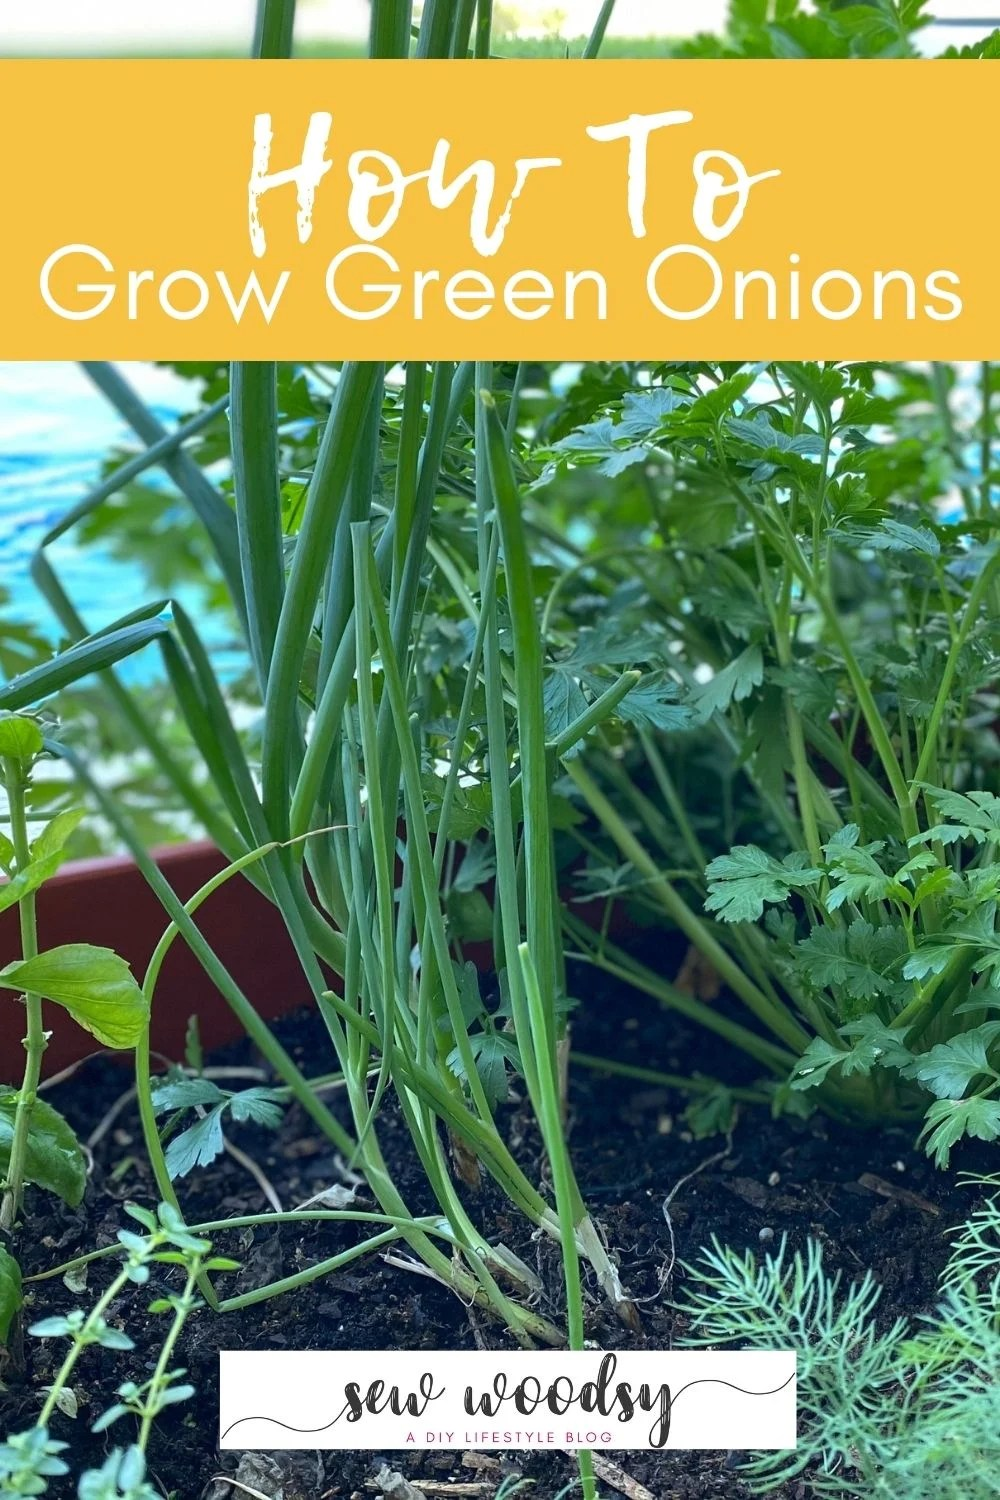 Green onions planted in a garden with text on image for Pinterest.